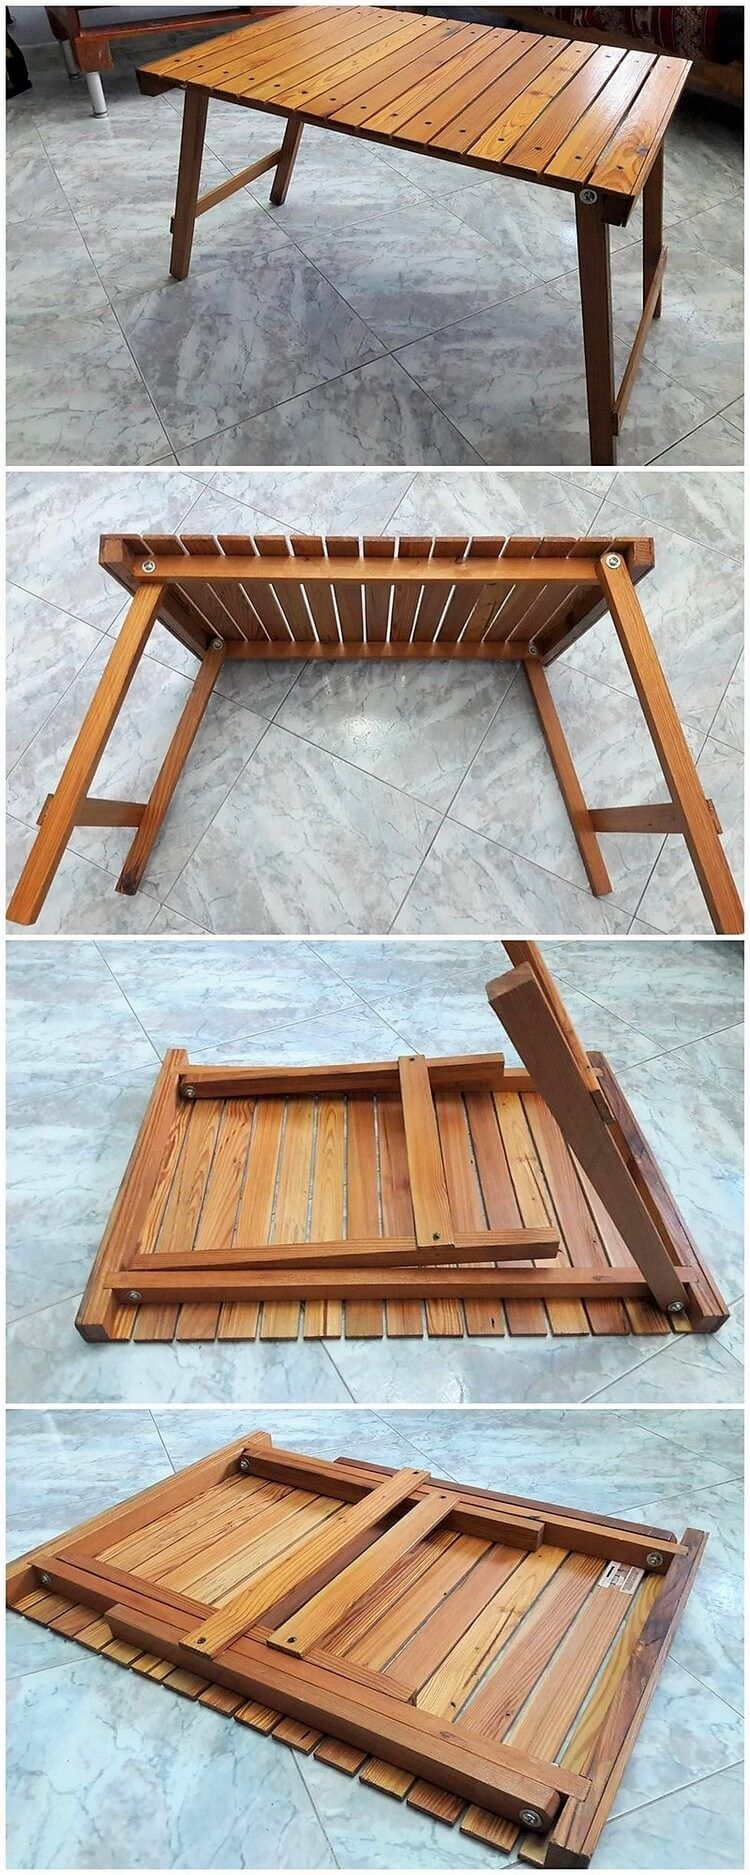 Exciting Ways to Make Useful Things with Old Wooden Pallets | Mesa ...